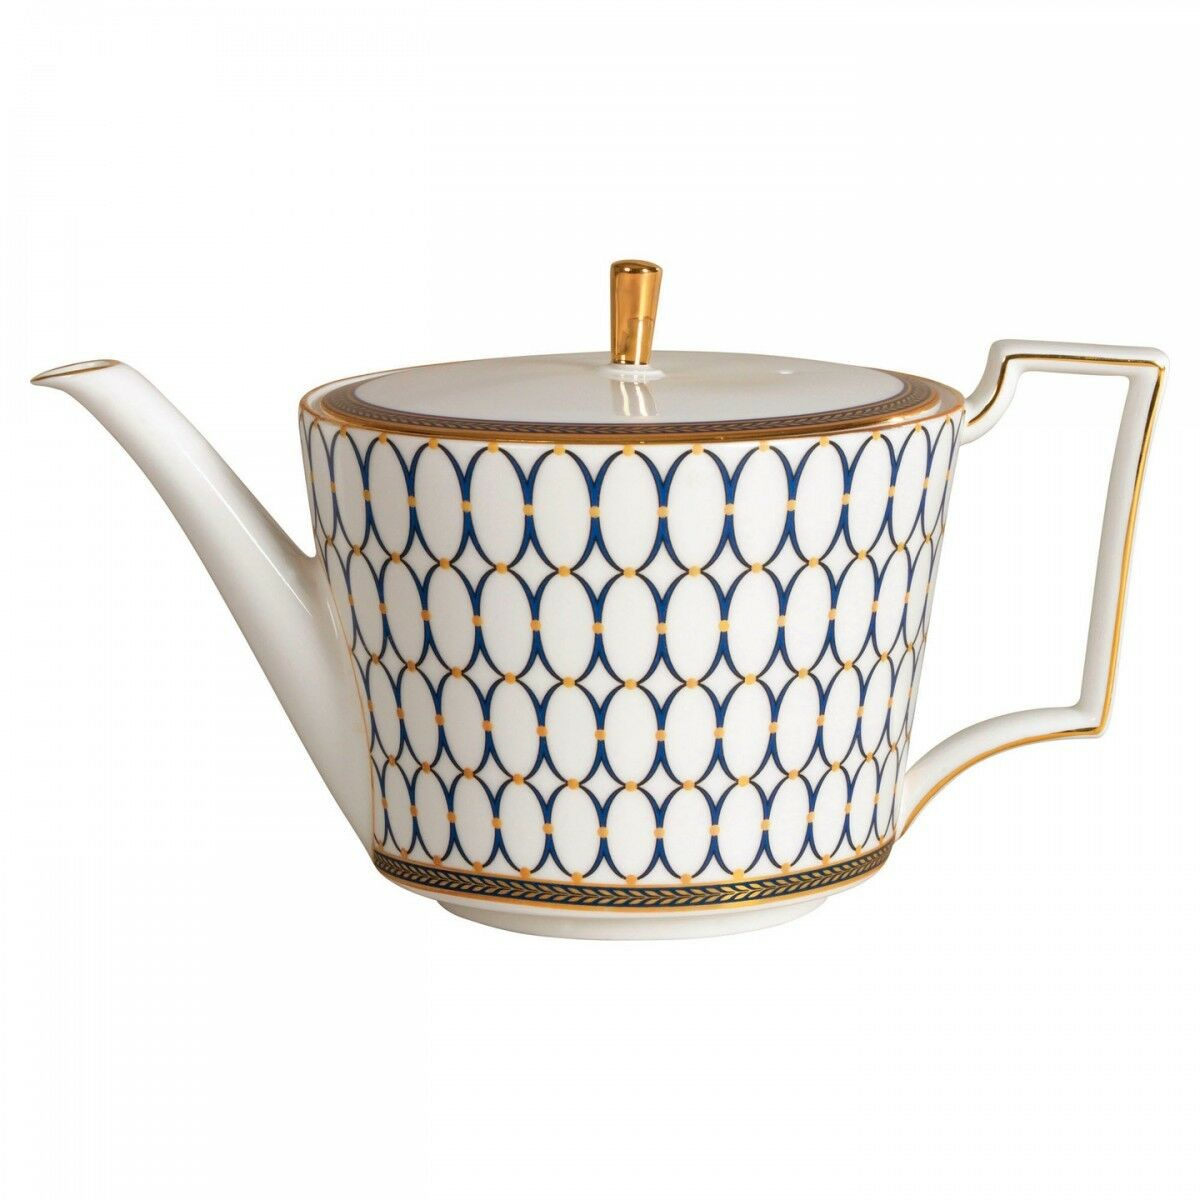 Wedgwood Renaissance gold Teapot 2.1 pt New with Tag C102102211